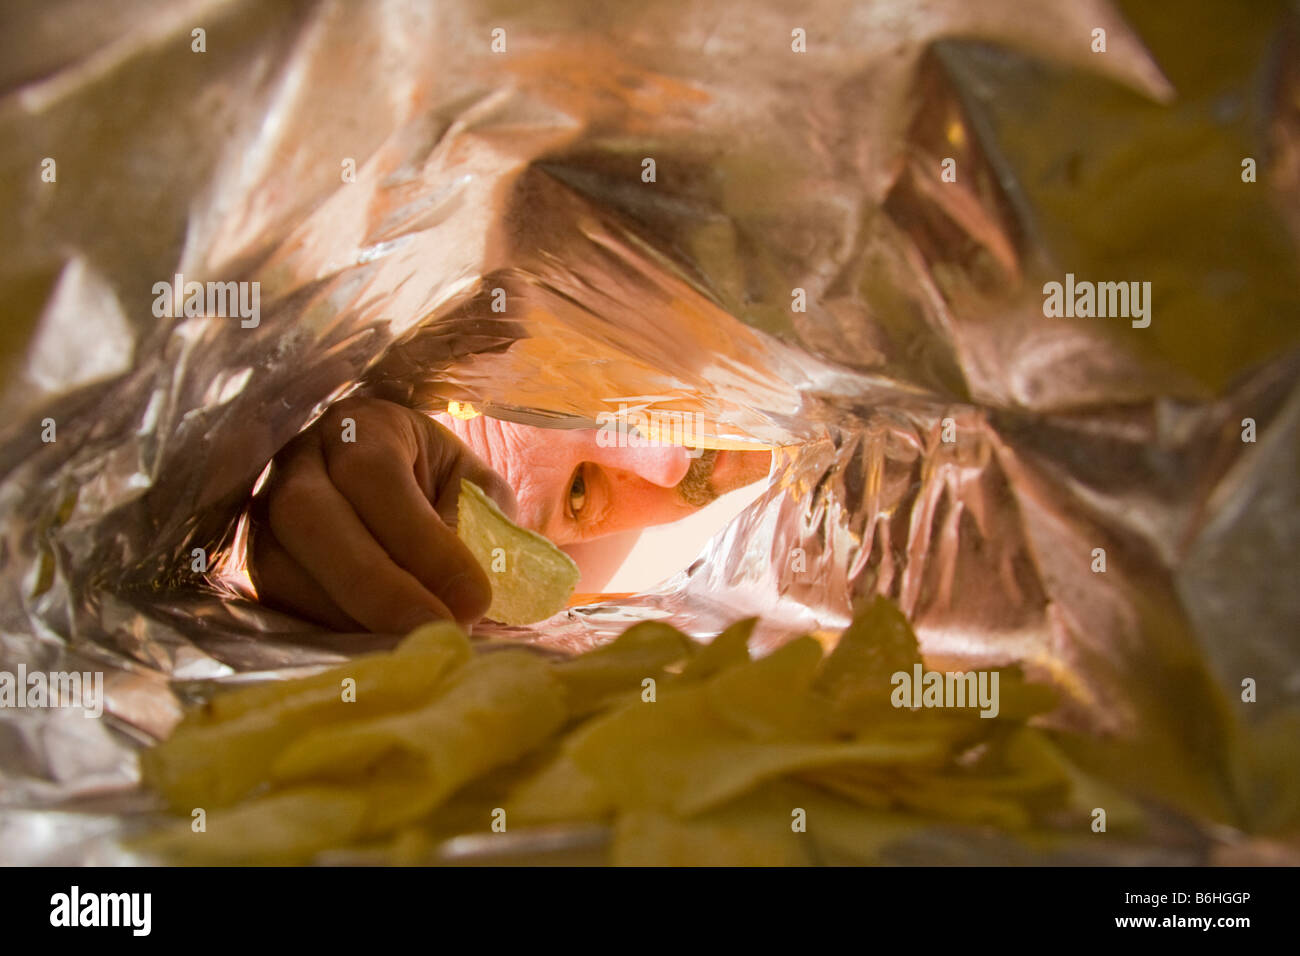 Reaching into a bag for some potato chips - Stock Image